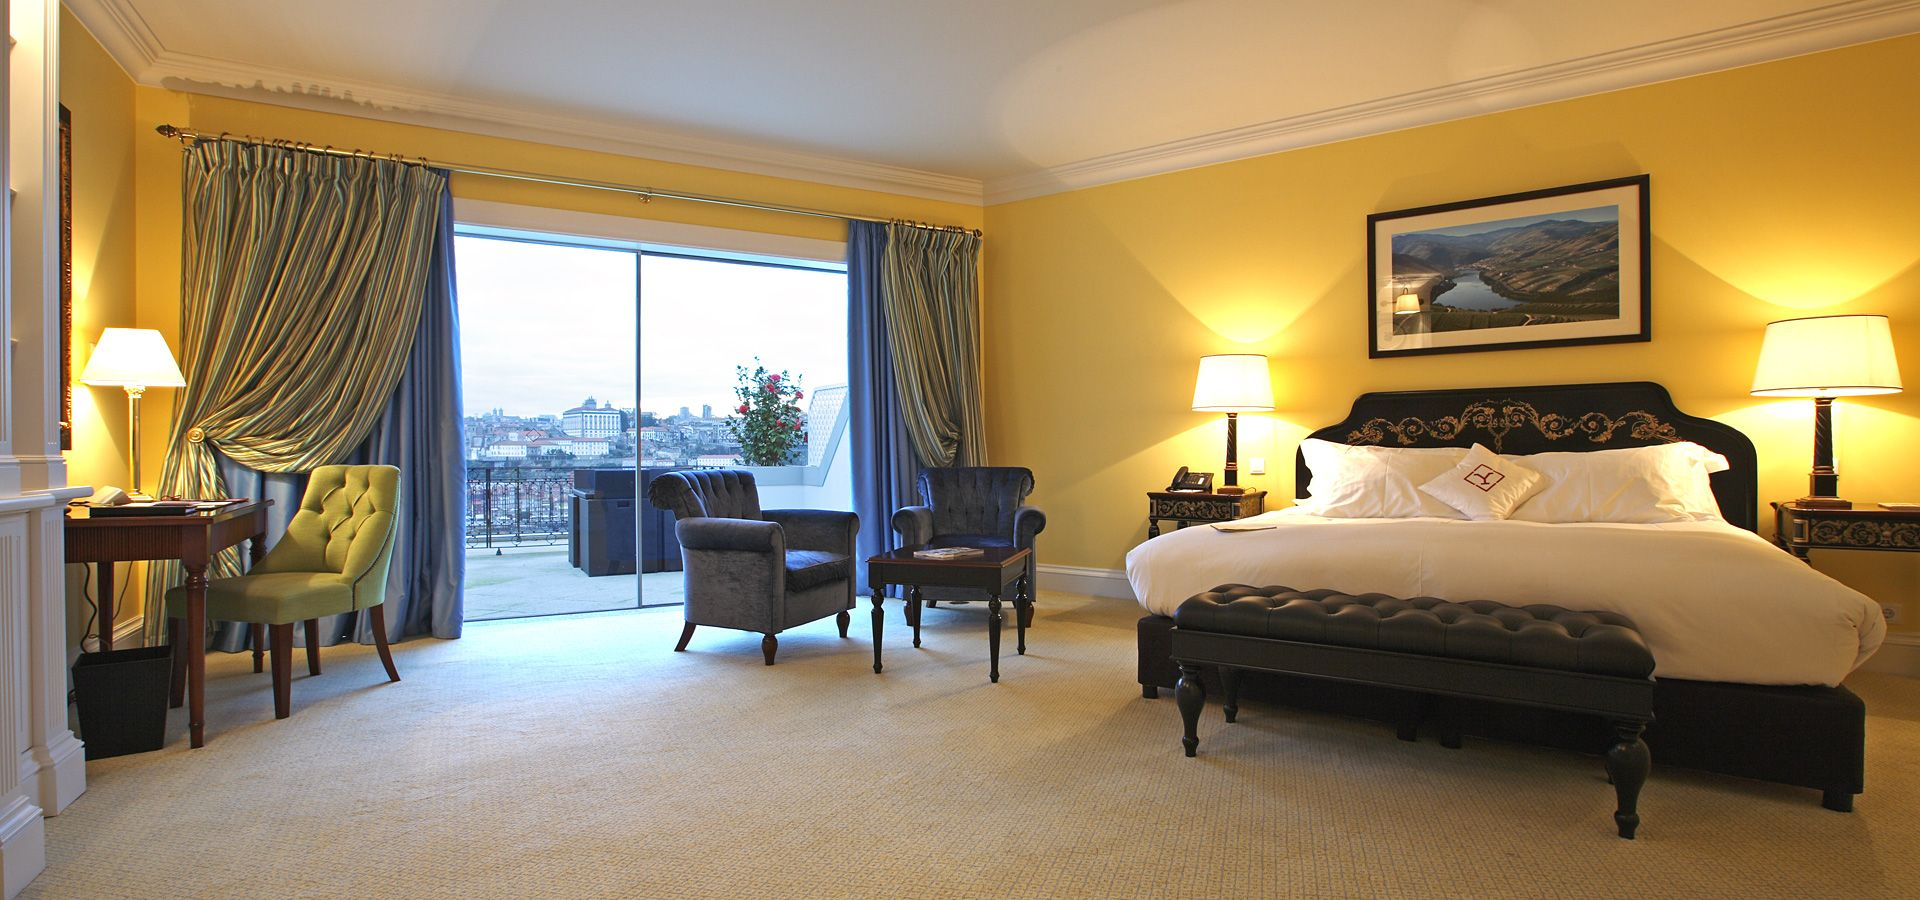 The Gradil Suite at The Yeatman, Porto